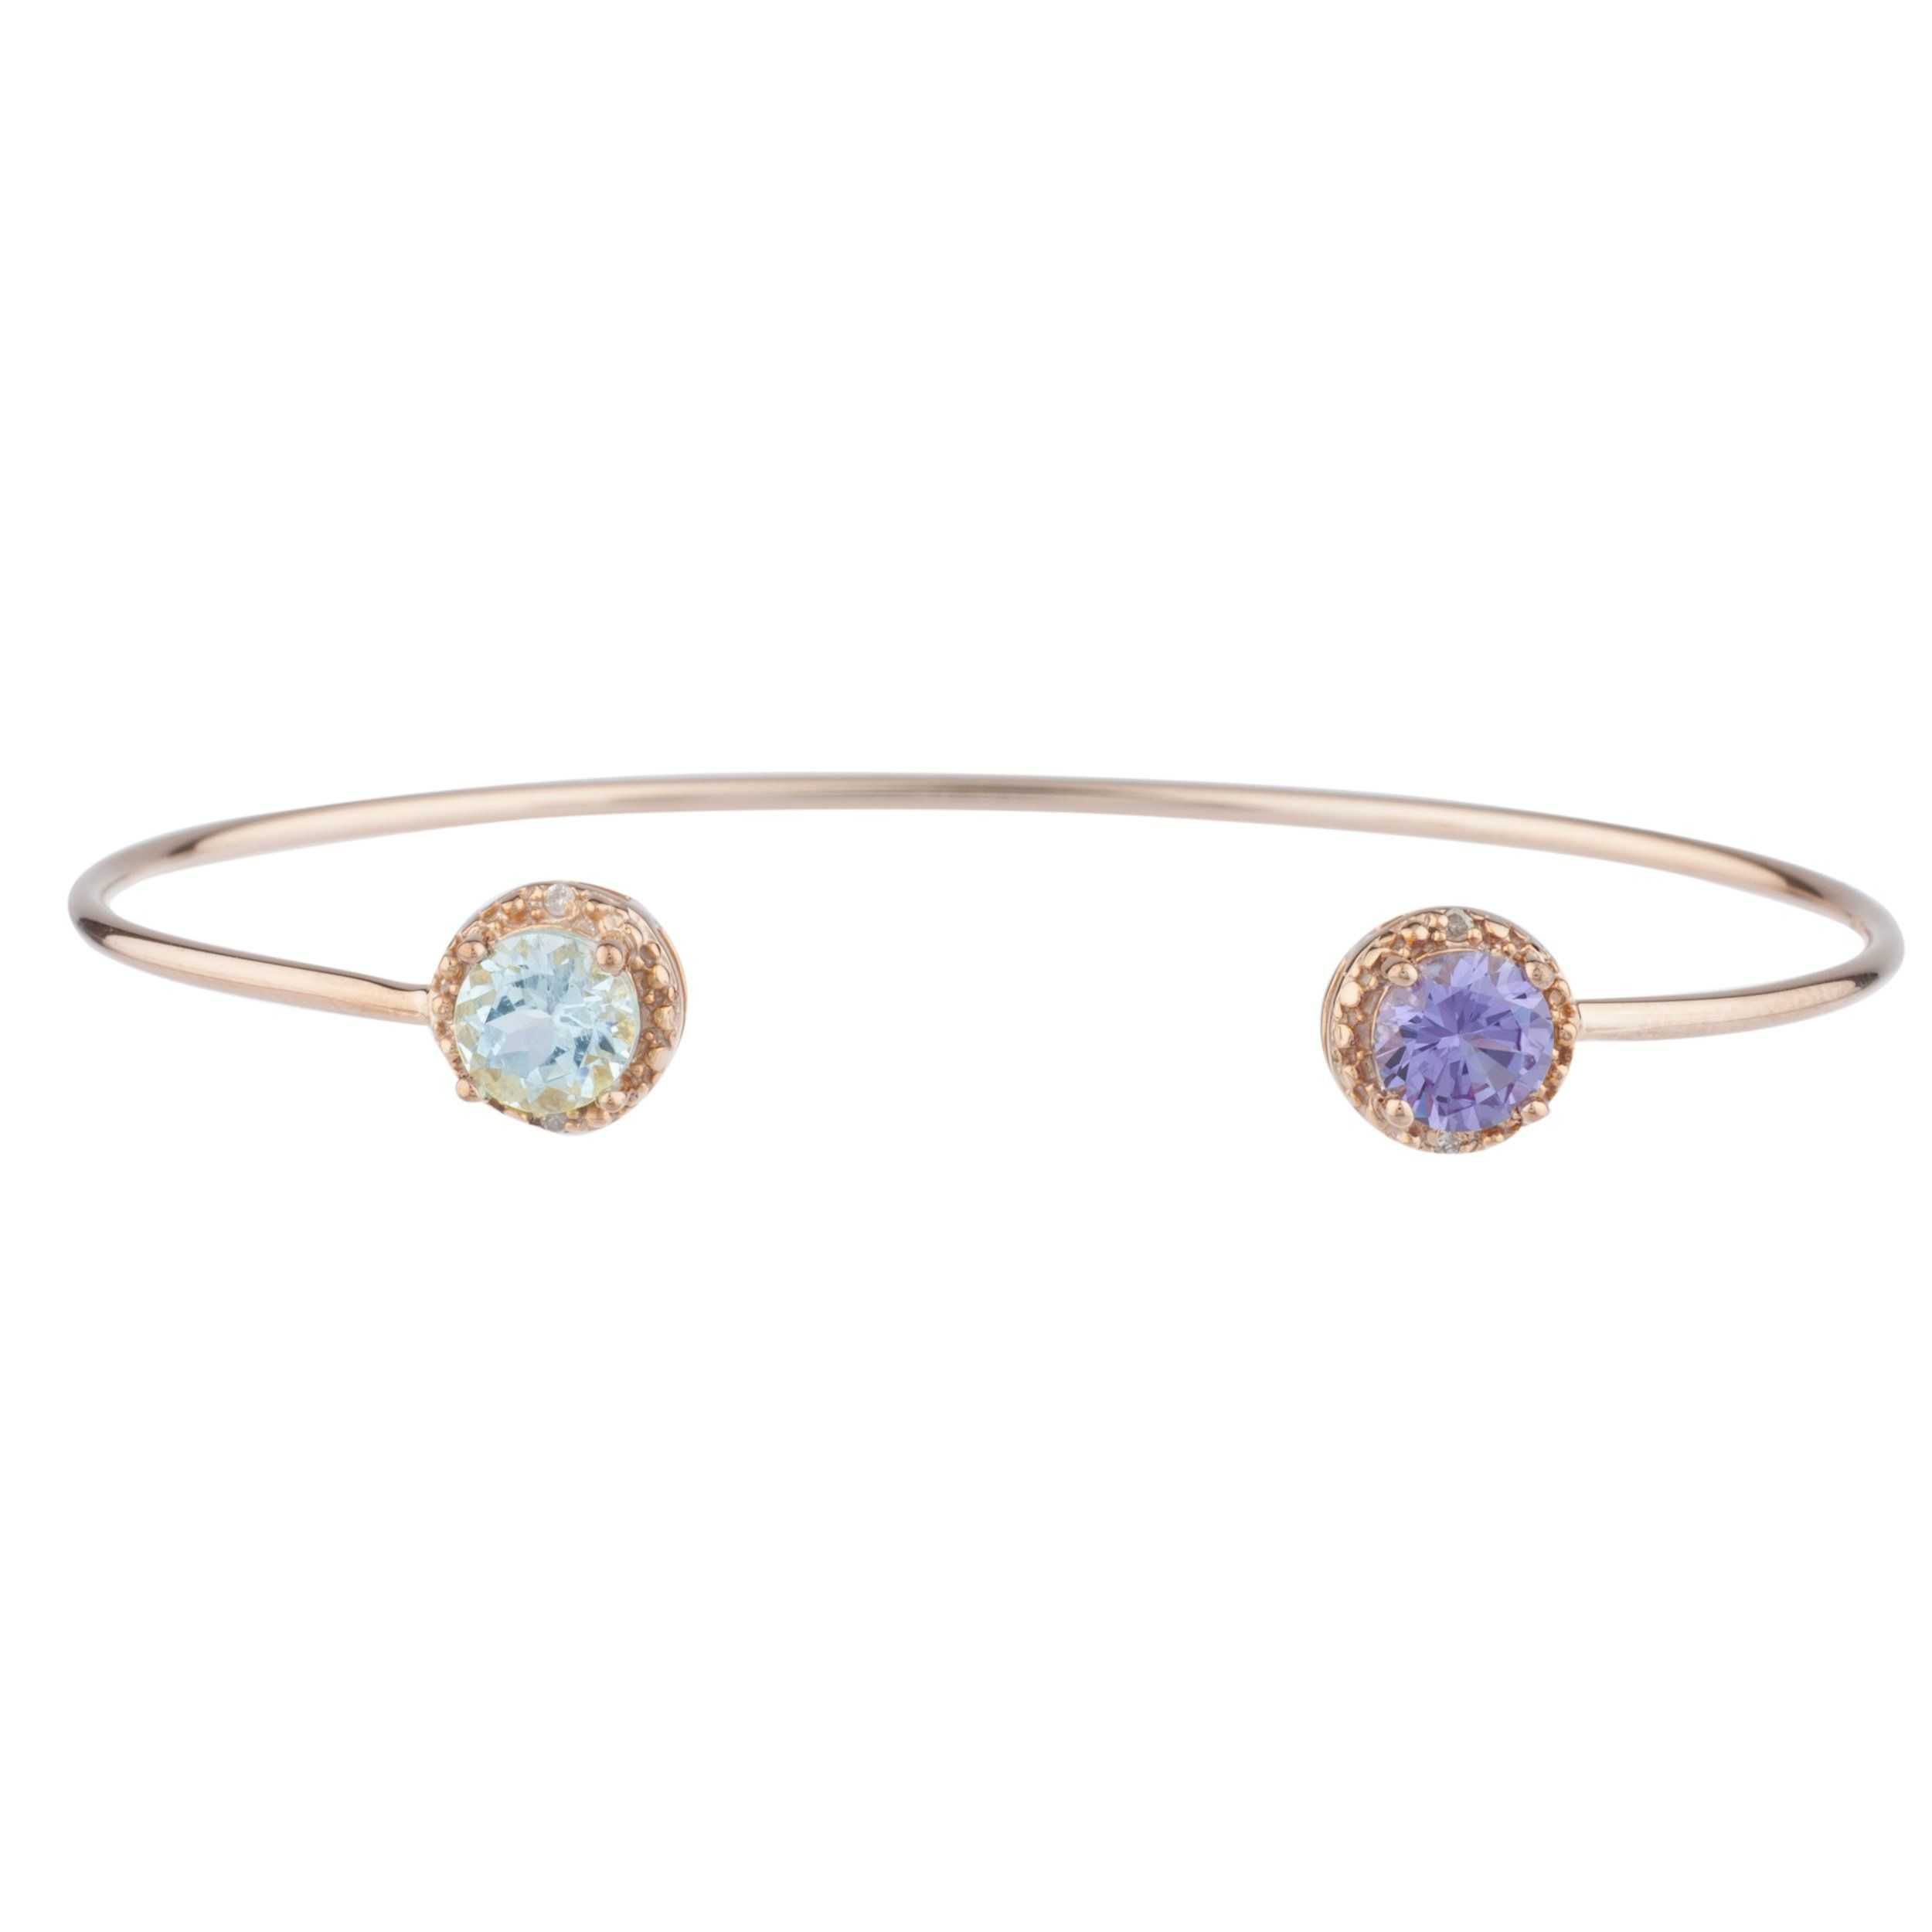 paul richter bracelet fabricated rose by gemstone designed colored bangles pin bangle gold diamond